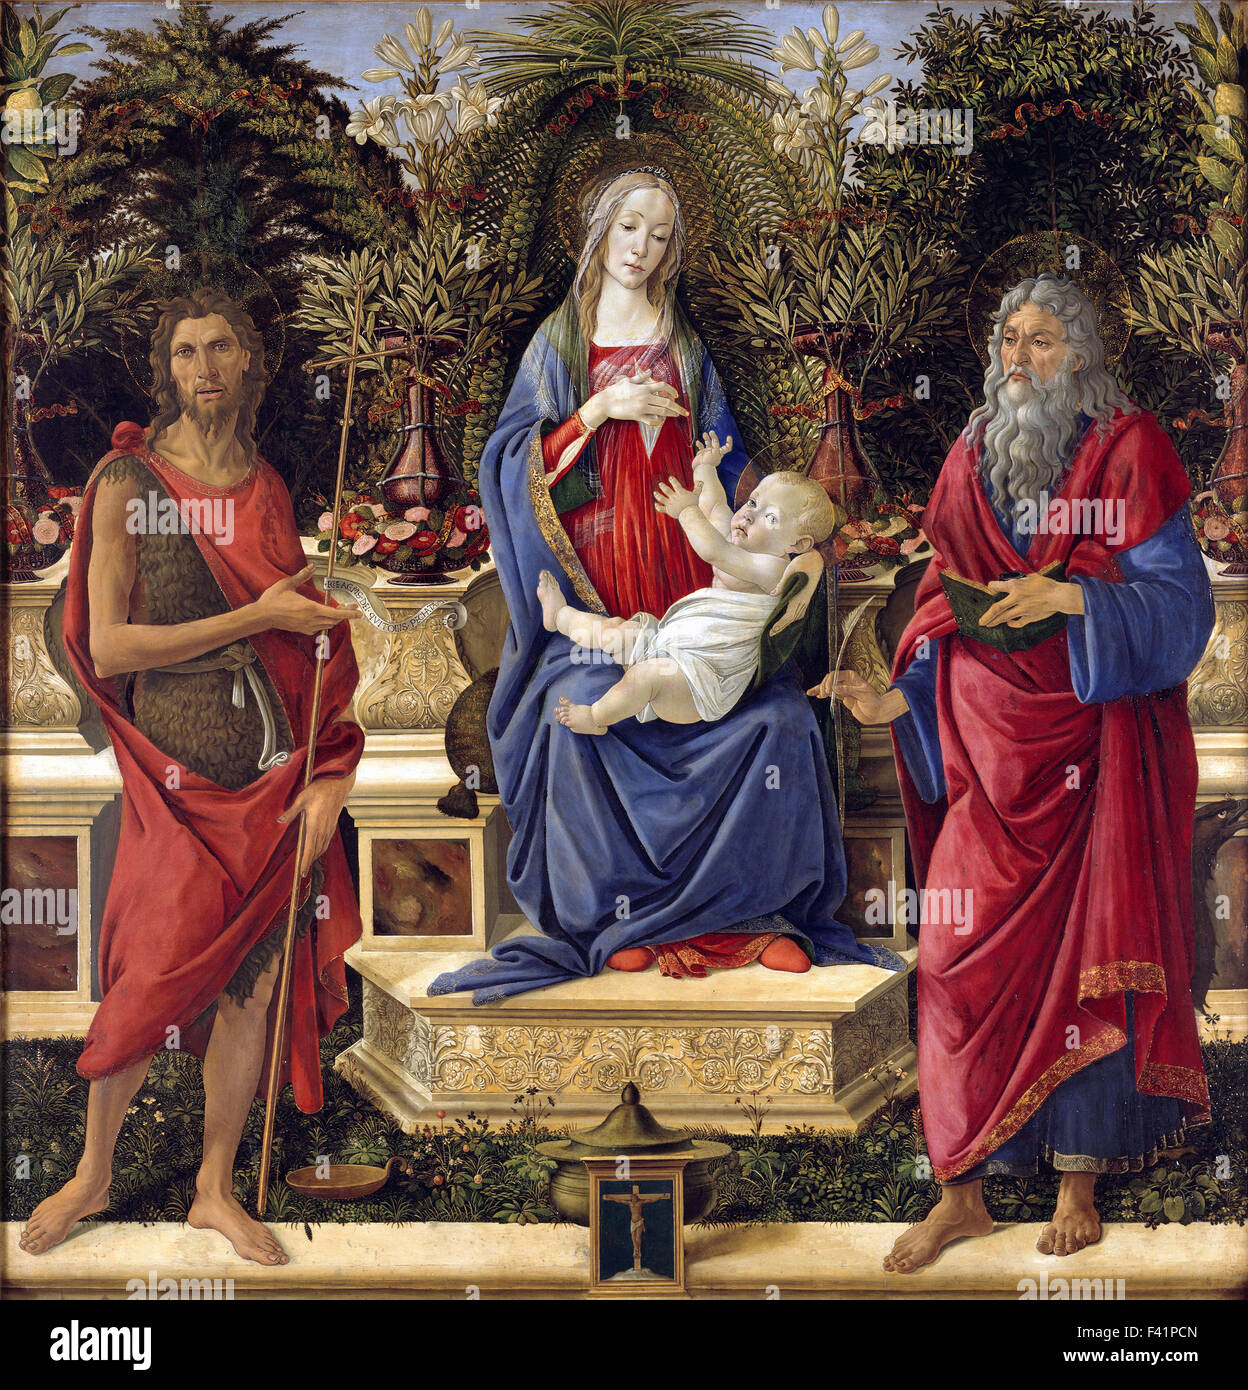 Sandro Botticelli - Madonna with Saints - Stock Image